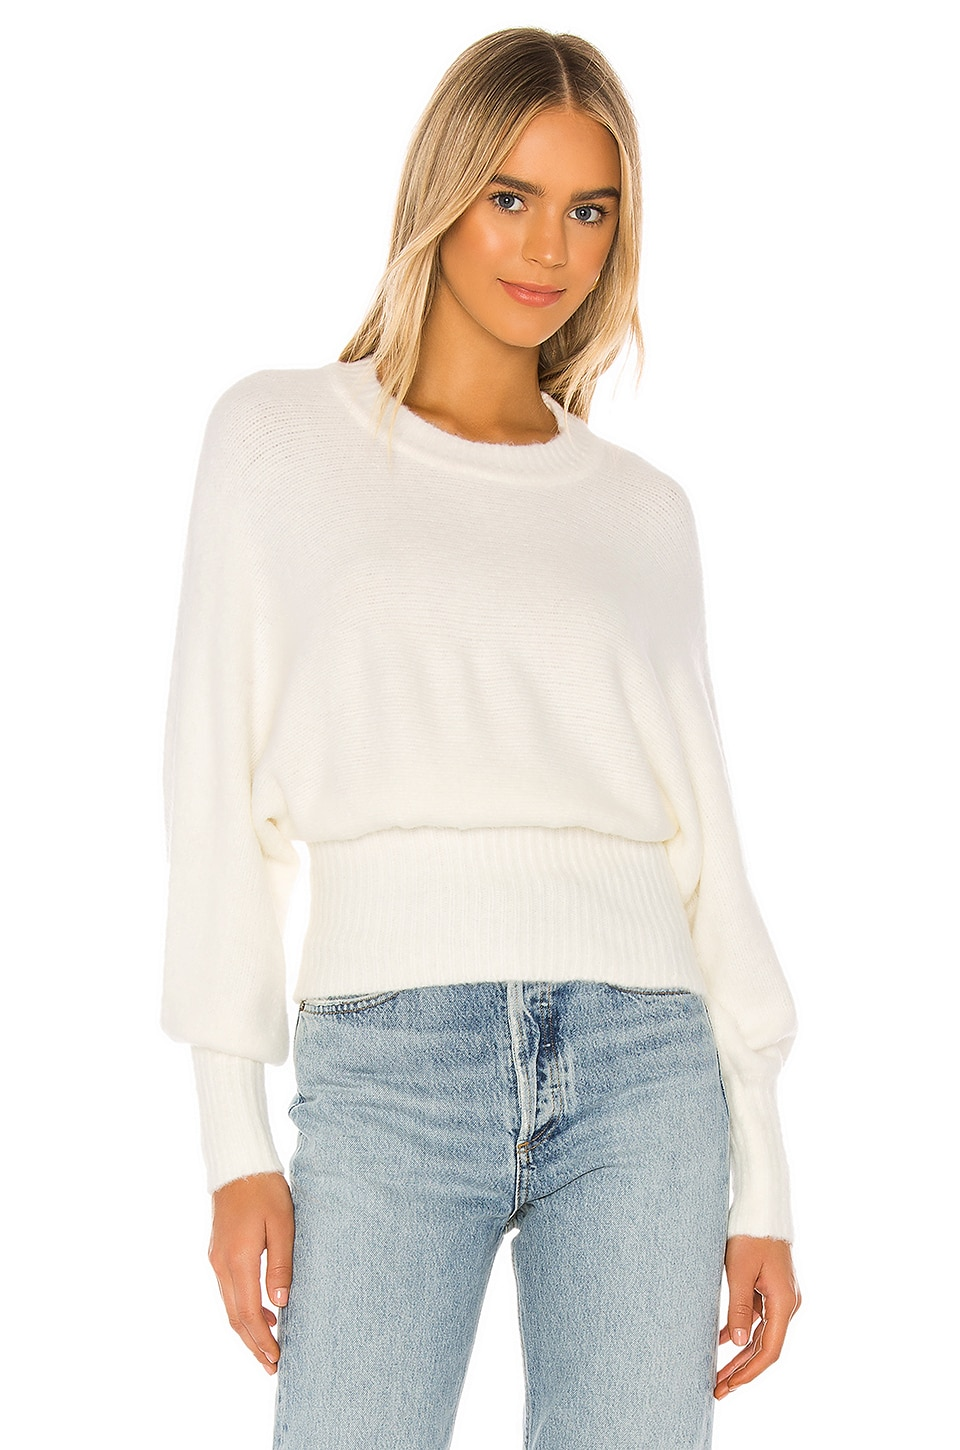 MAJORELLE Almond Sweater in Ivory